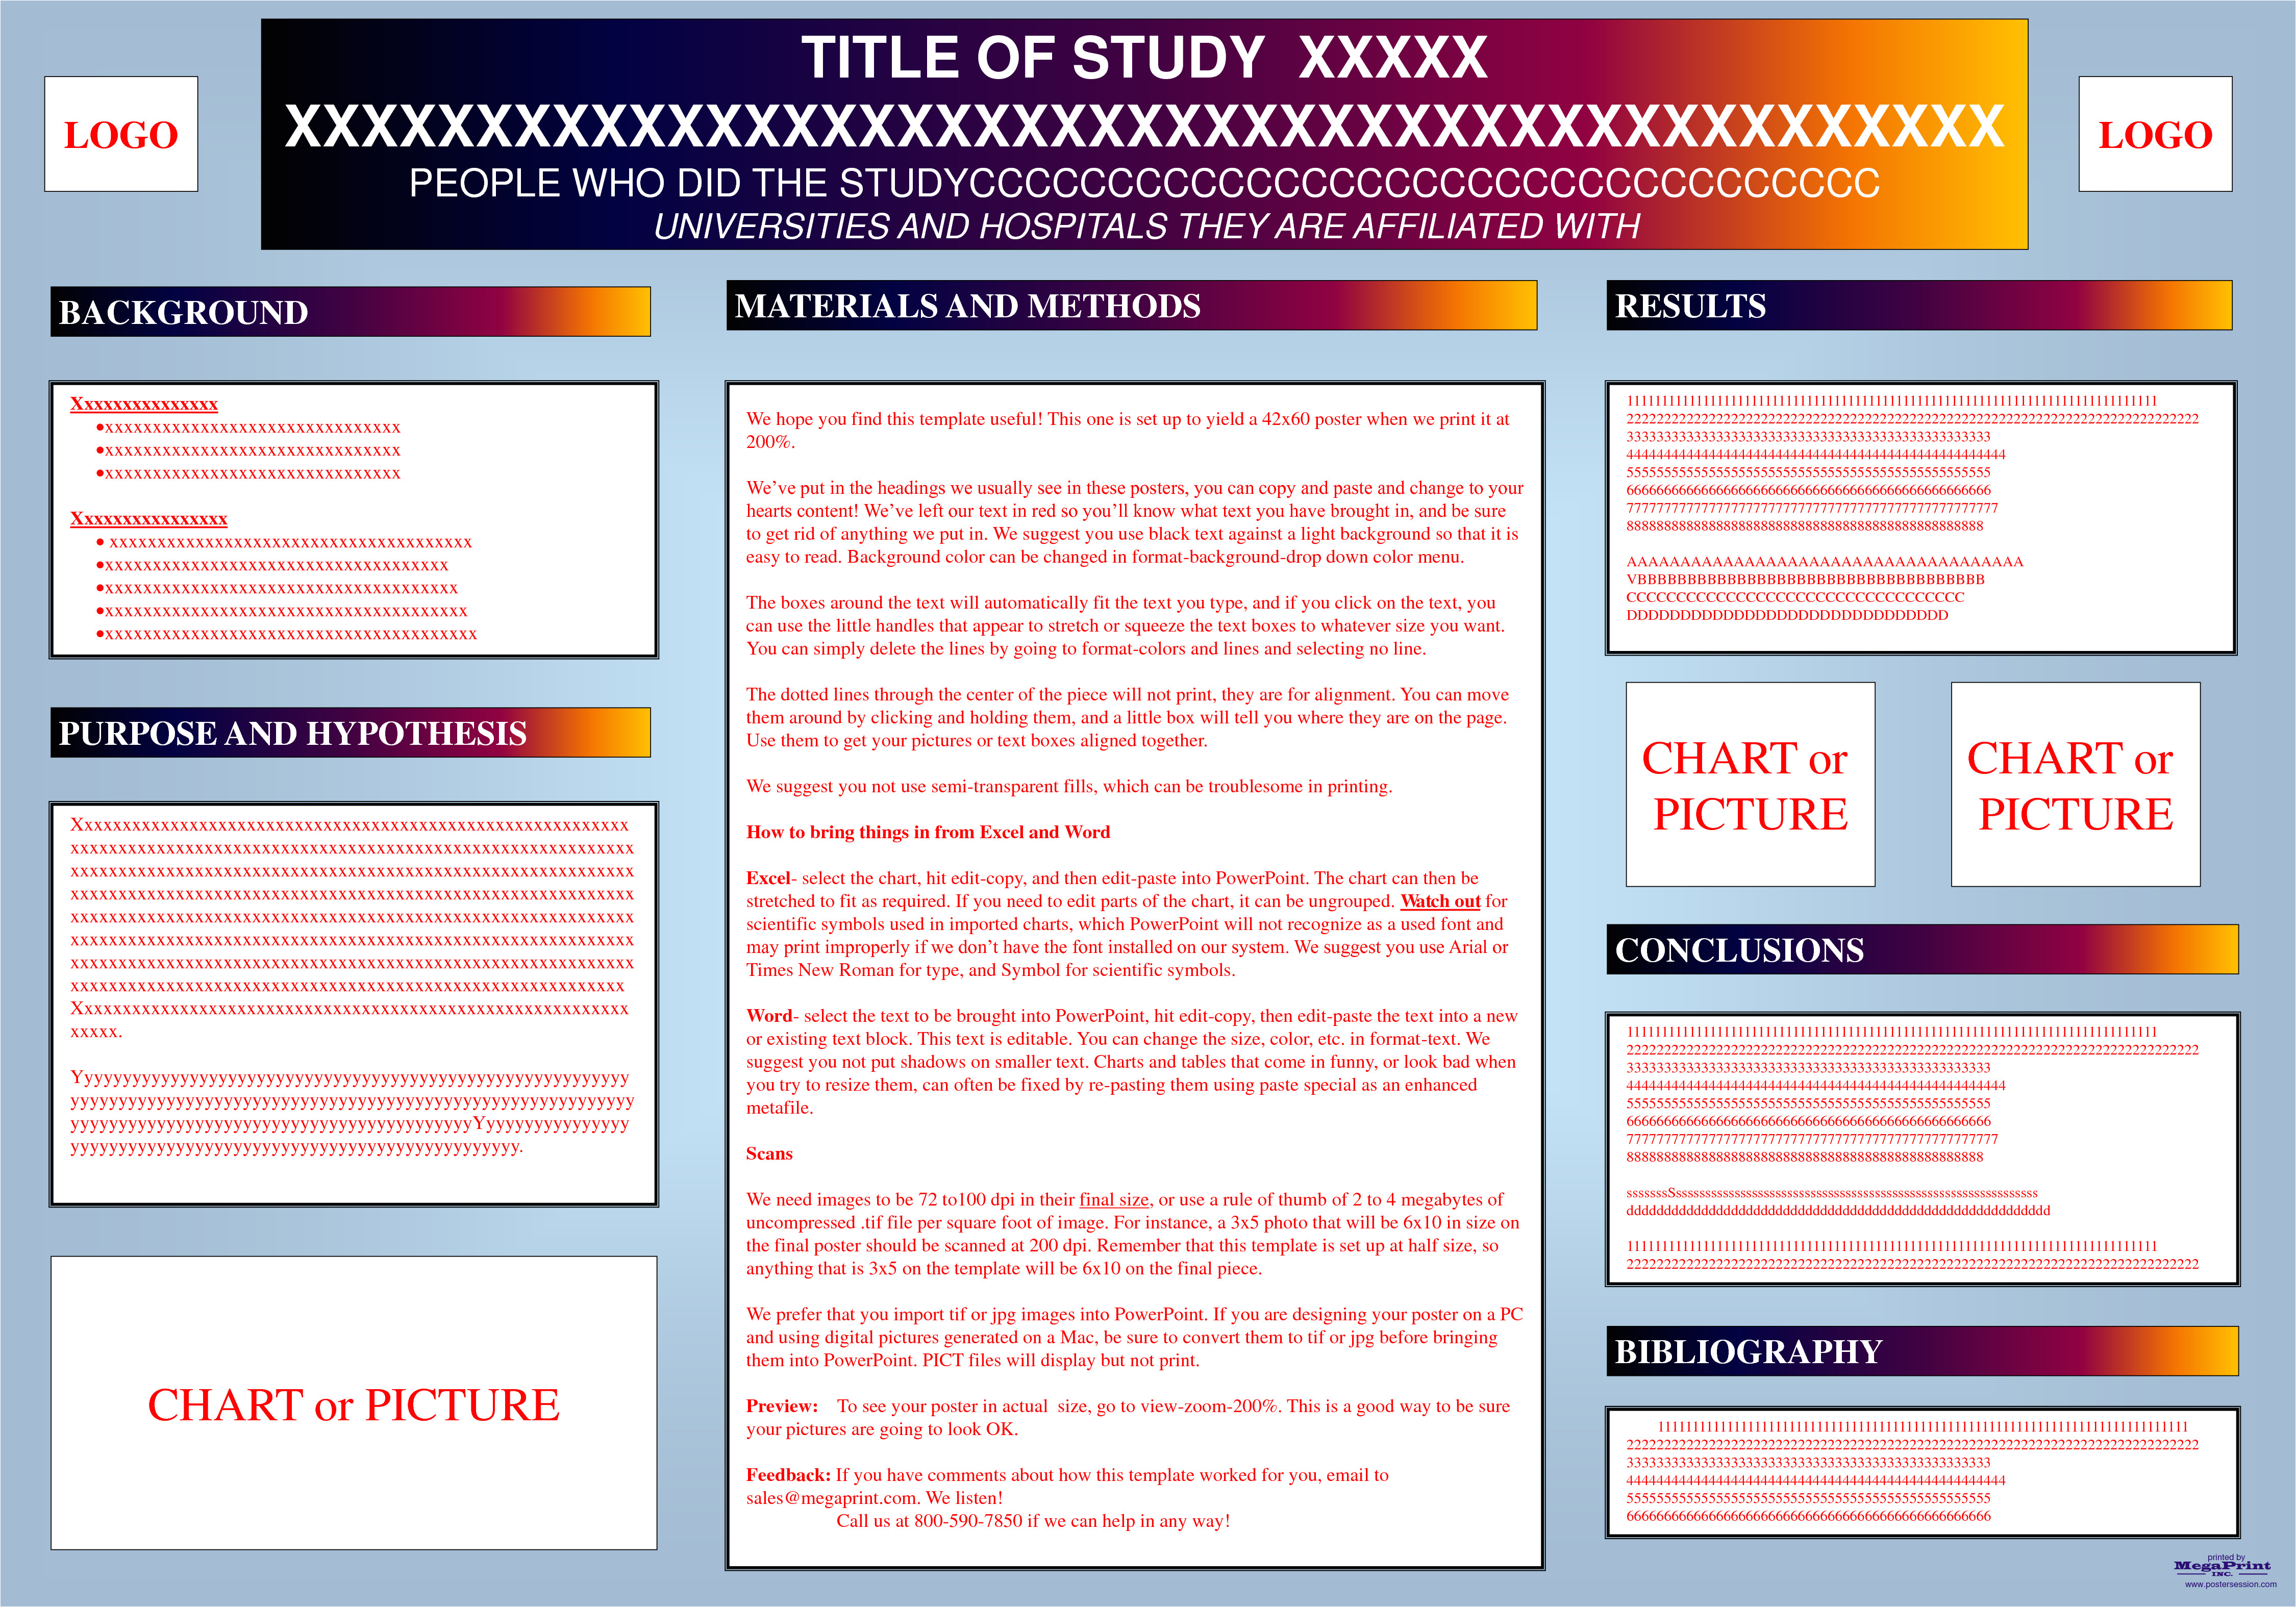 post academic research poster presentation templates 481054